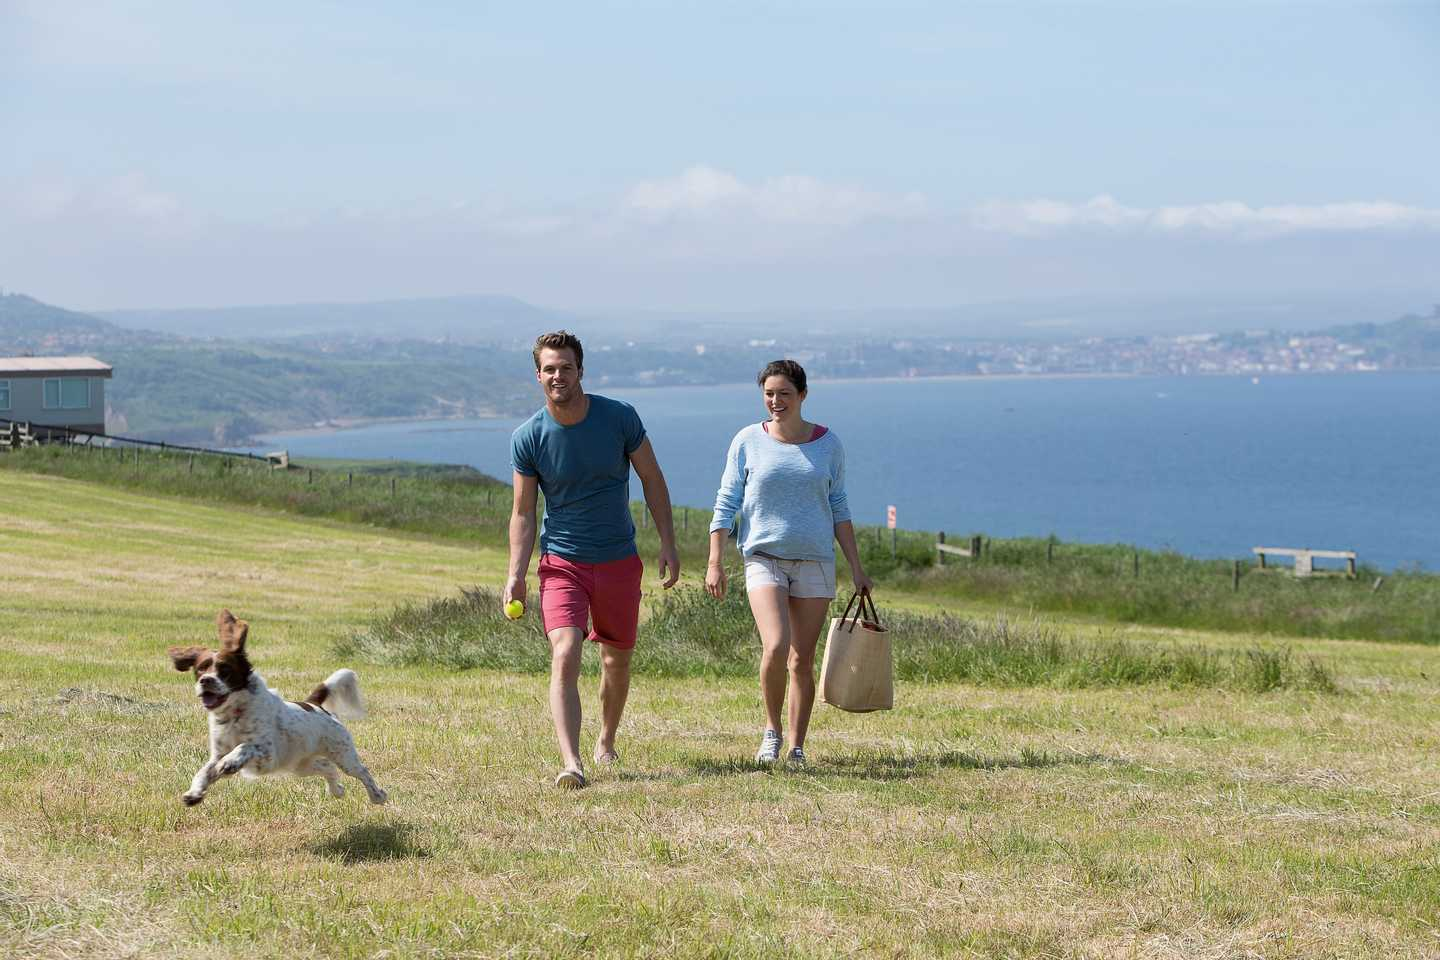 A couple walking their dog on the grass overlooking the sea